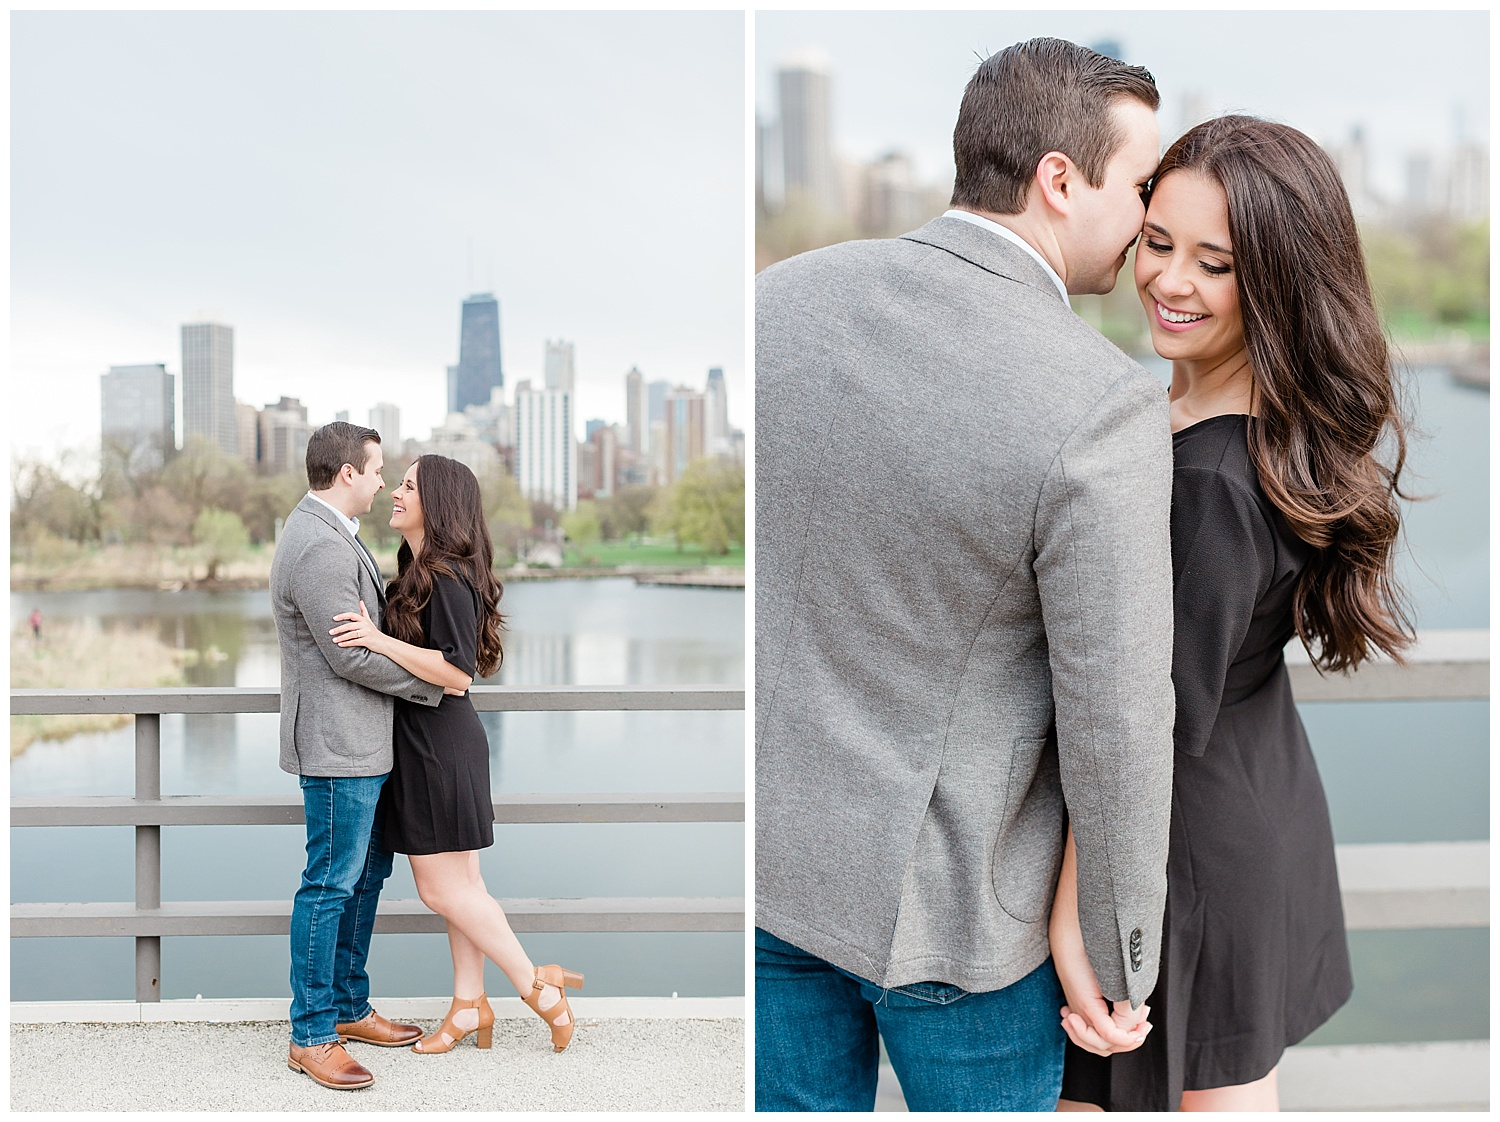 classic-downtown-chicago-engagement-session-kristen-cloyd-photography_0011.jpg